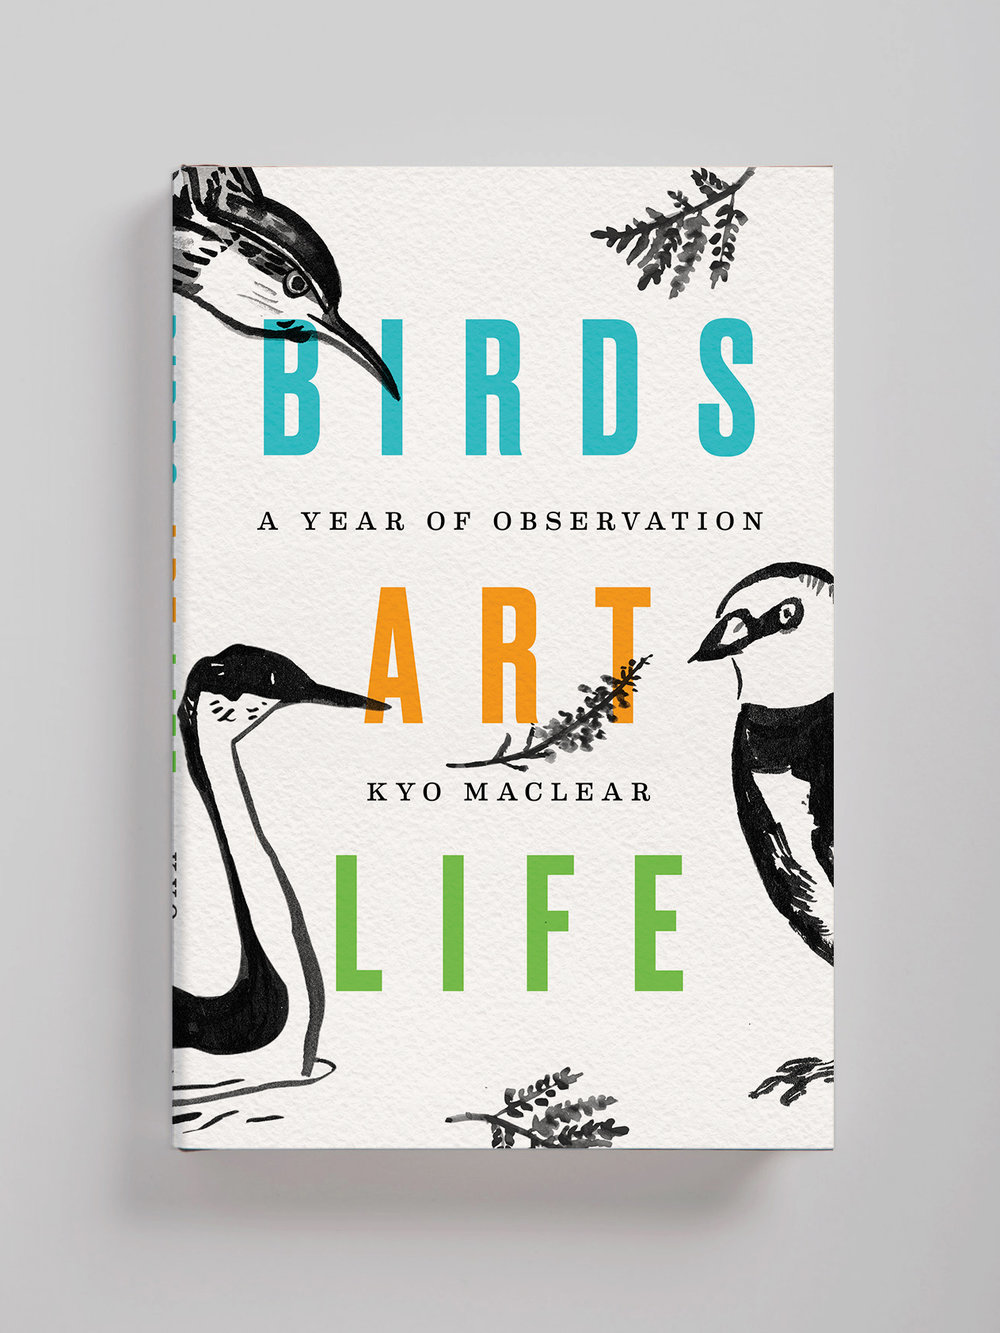 Lauren Peters-Collaer—Birds Art Life